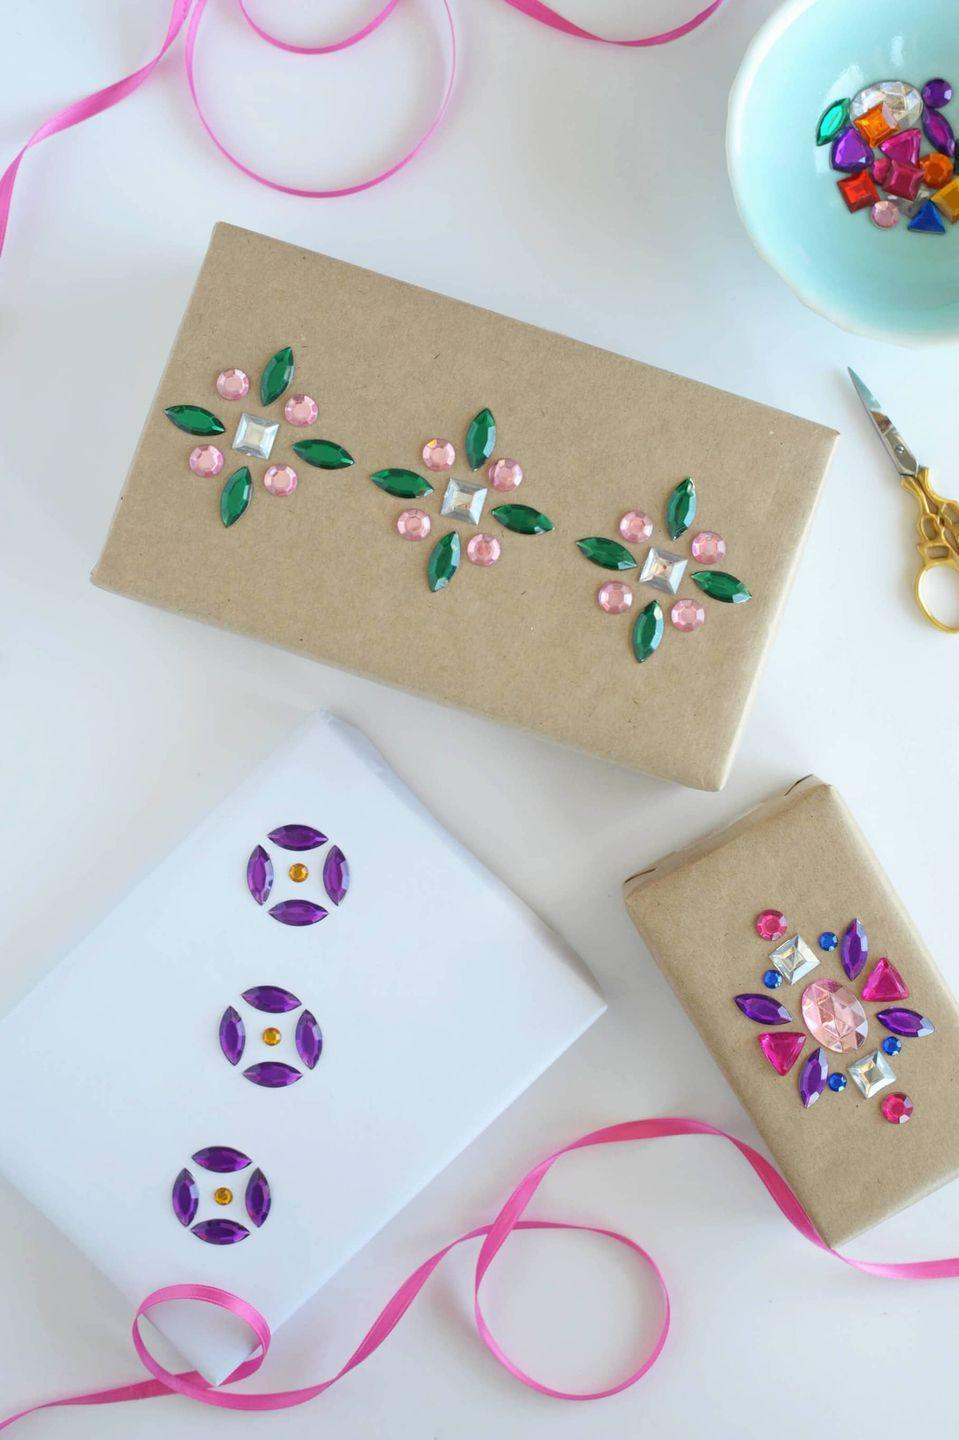 """<p>Make pretty patterns out of stick-on gemstones (or use a little craft glue for extra reinforcement!). For Christmas, you could even arrange them to look like ornaments. </p><p>Get the tutorial at <a href=""""https://www.aliceandlois.com/diy-rhinestone-gift-wrap/"""" rel=""""nofollow noopener"""" target=""""_blank"""" data-ylk=""""slk:Alice and Lois"""" class=""""link rapid-noclick-resp"""">Alice and Lois</a>.</p><p><a class=""""link rapid-noclick-resp"""" href=""""https://www.amazon.com/DoTebpa-Colorful-Rhinestone-Scrapbooking-Embellishments/dp/B074LRWLNS/?tag=syn-yahoo-20&ascsubtag=%5Bartid%7C10072.g.34015639%5Bsrc%7Cyahoo-us"""" rel=""""nofollow noopener"""" target=""""_blank"""" data-ylk=""""slk:SHOP RHINESTONES"""">SHOP RHINESTONES</a> </p>"""